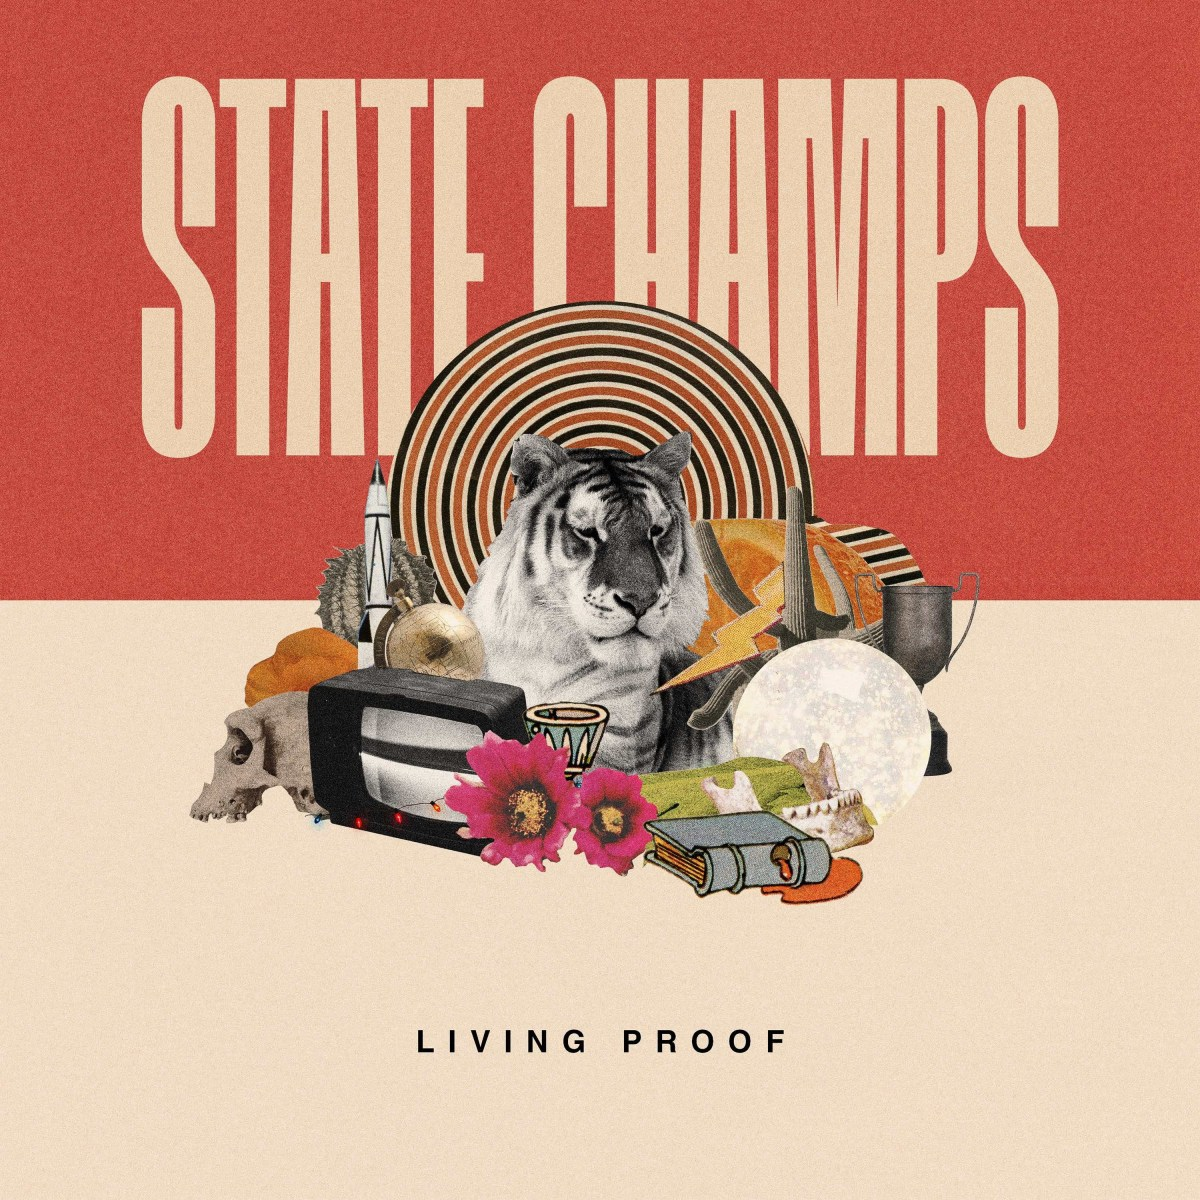 State Champs - Living Proof (Album Review)